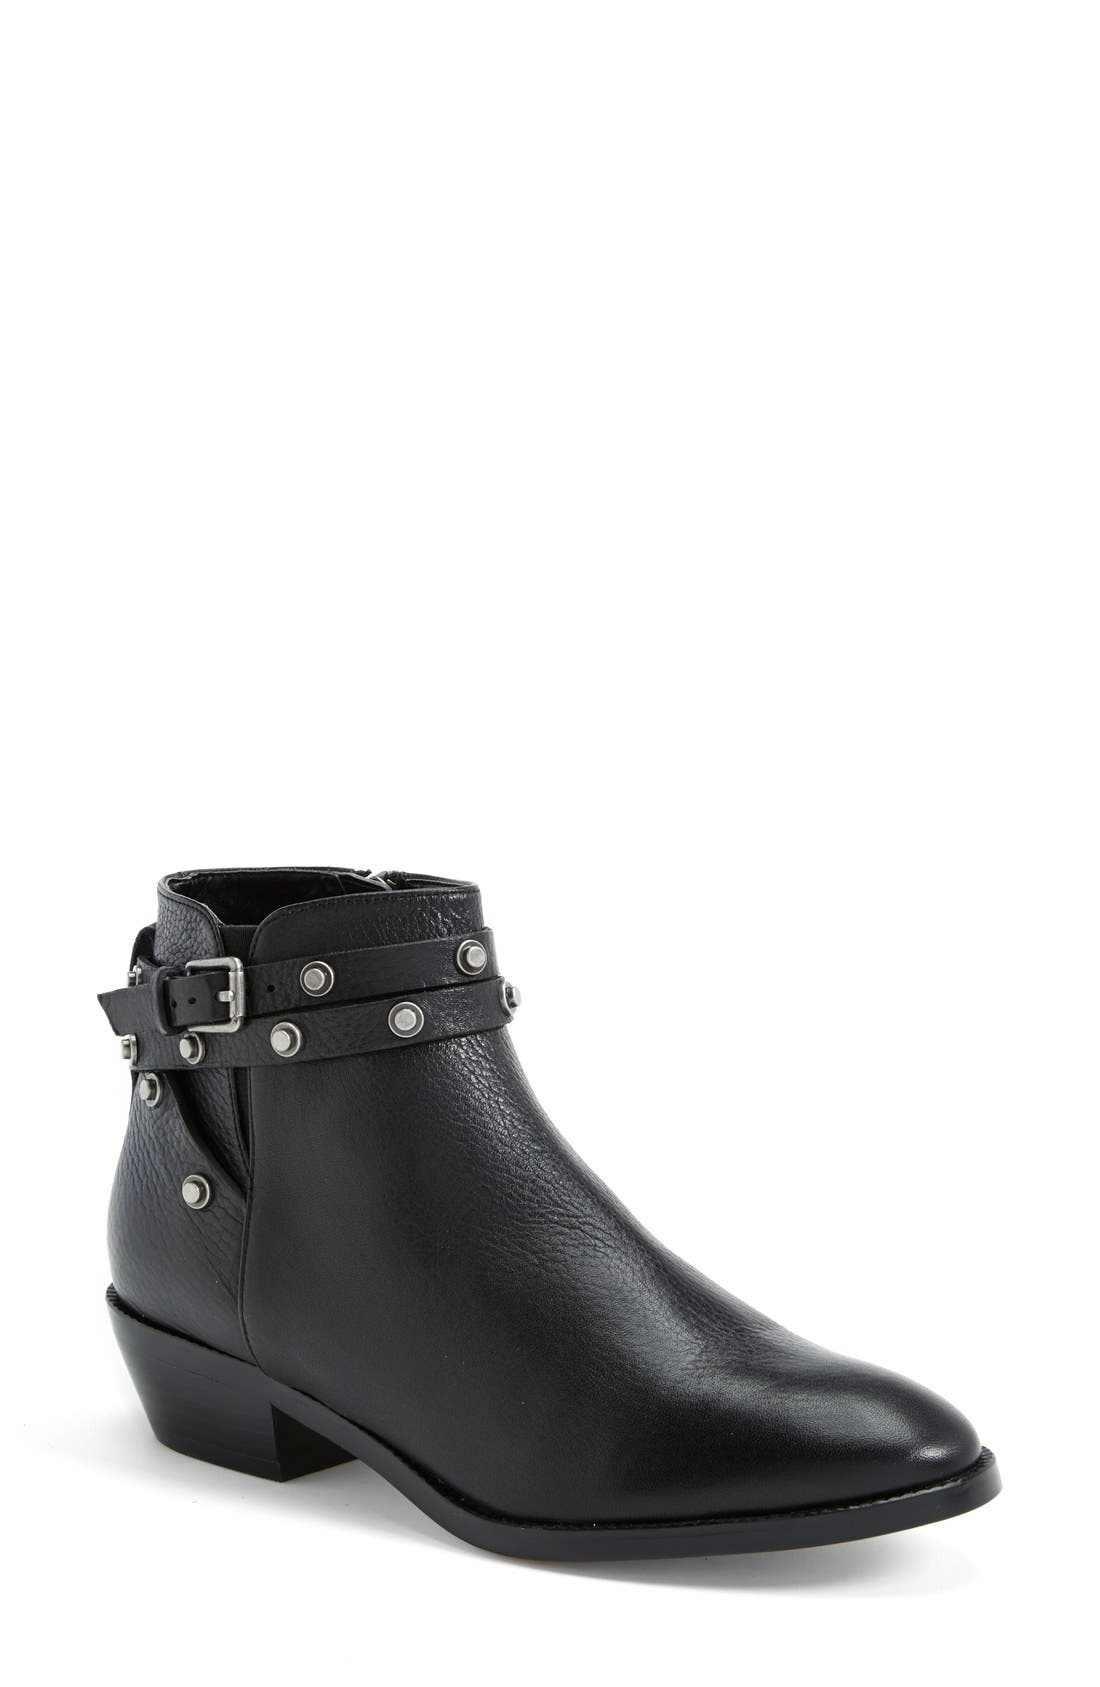 HALOGEN<SUP>®</SUP>, Halogen 'Lidia' Studded Leather Ankle Bootie, Main thumbnail 1, color, 001